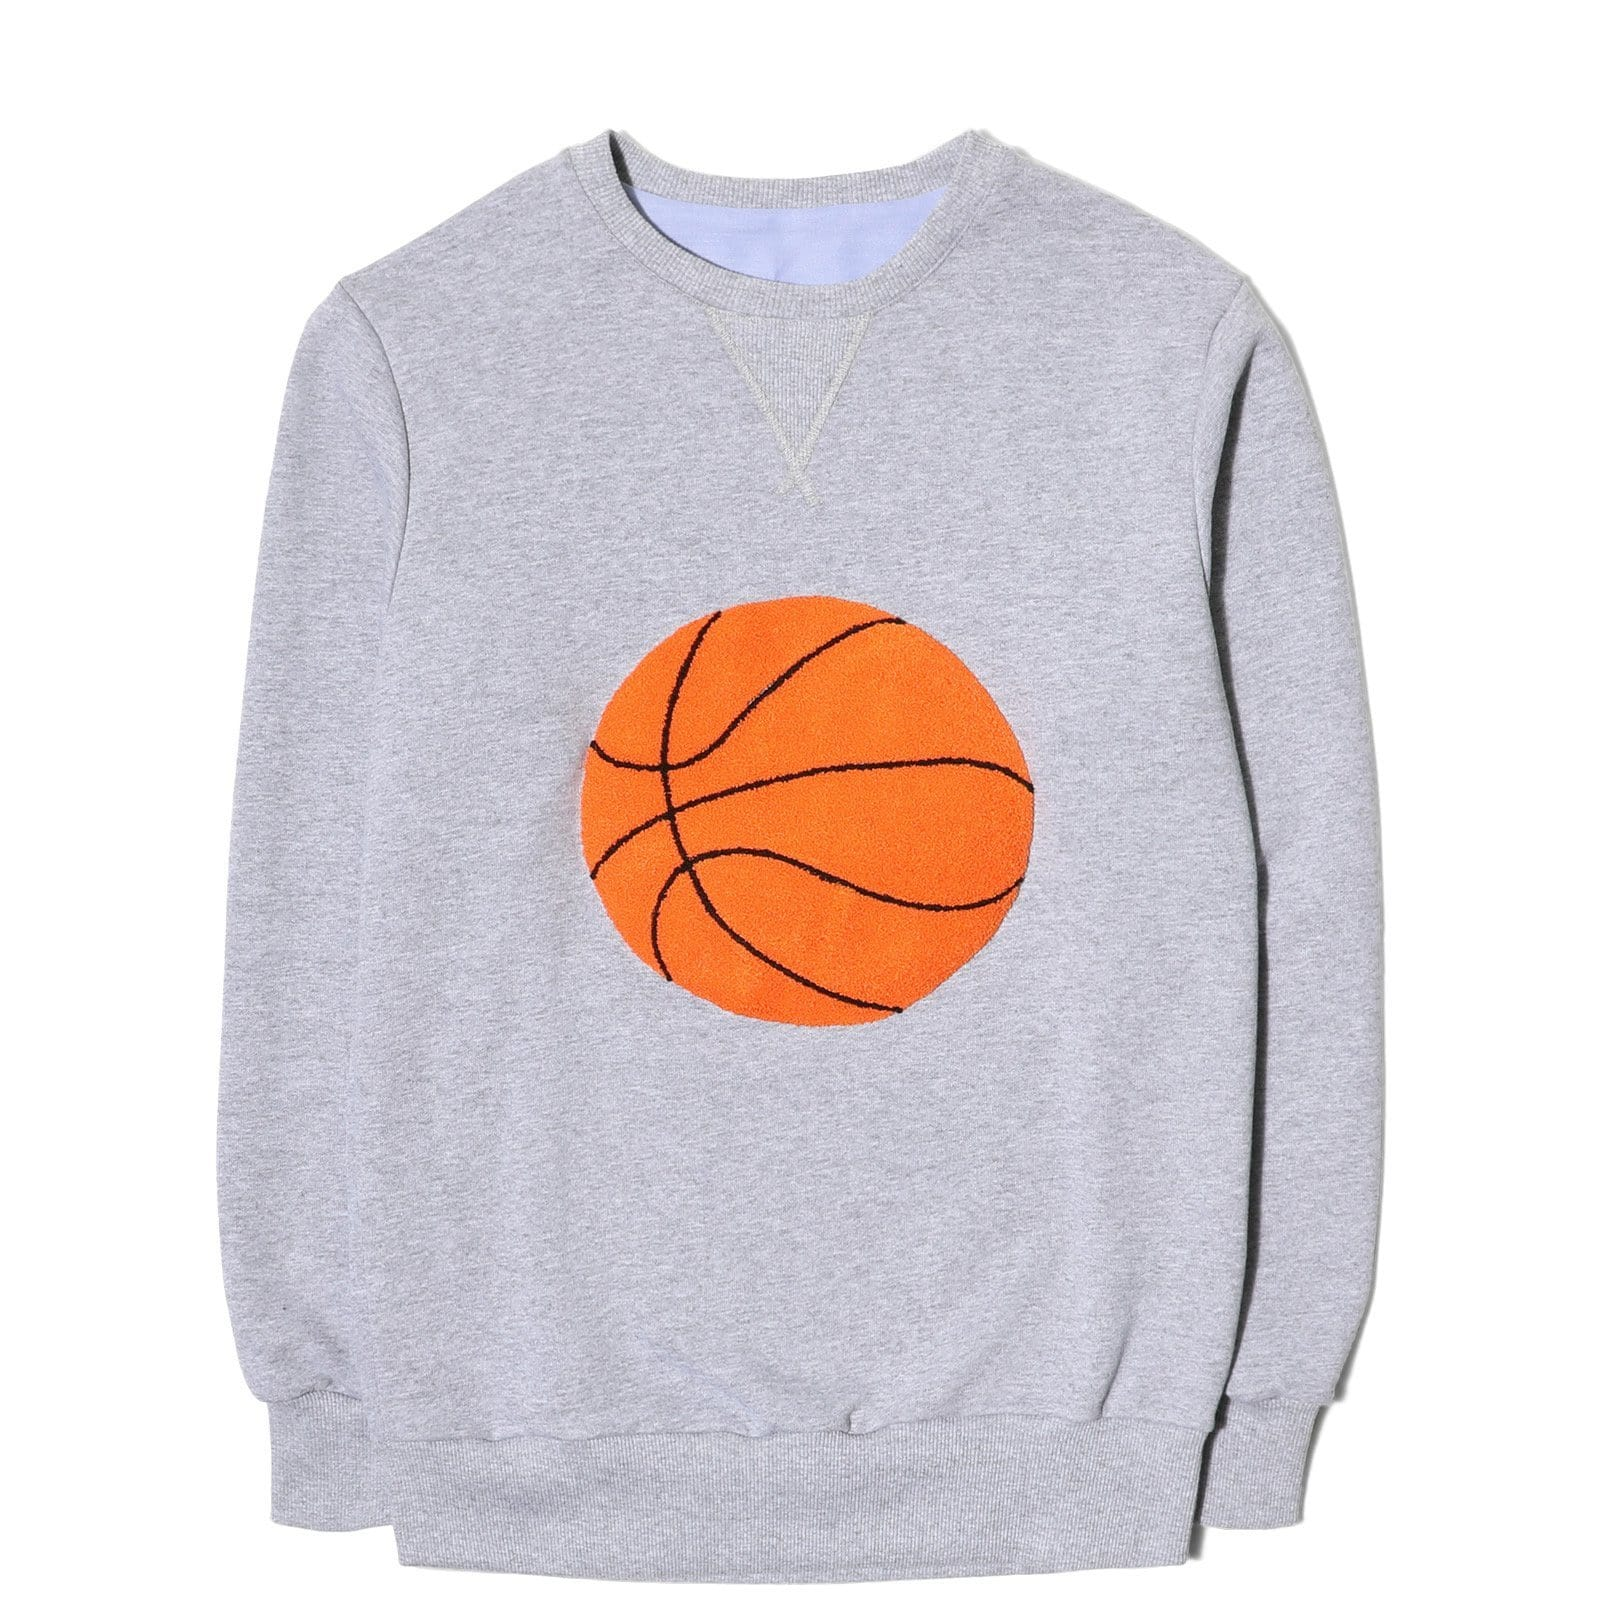 LC23 BASKETBALL BALL SWEATSHIRT Grey